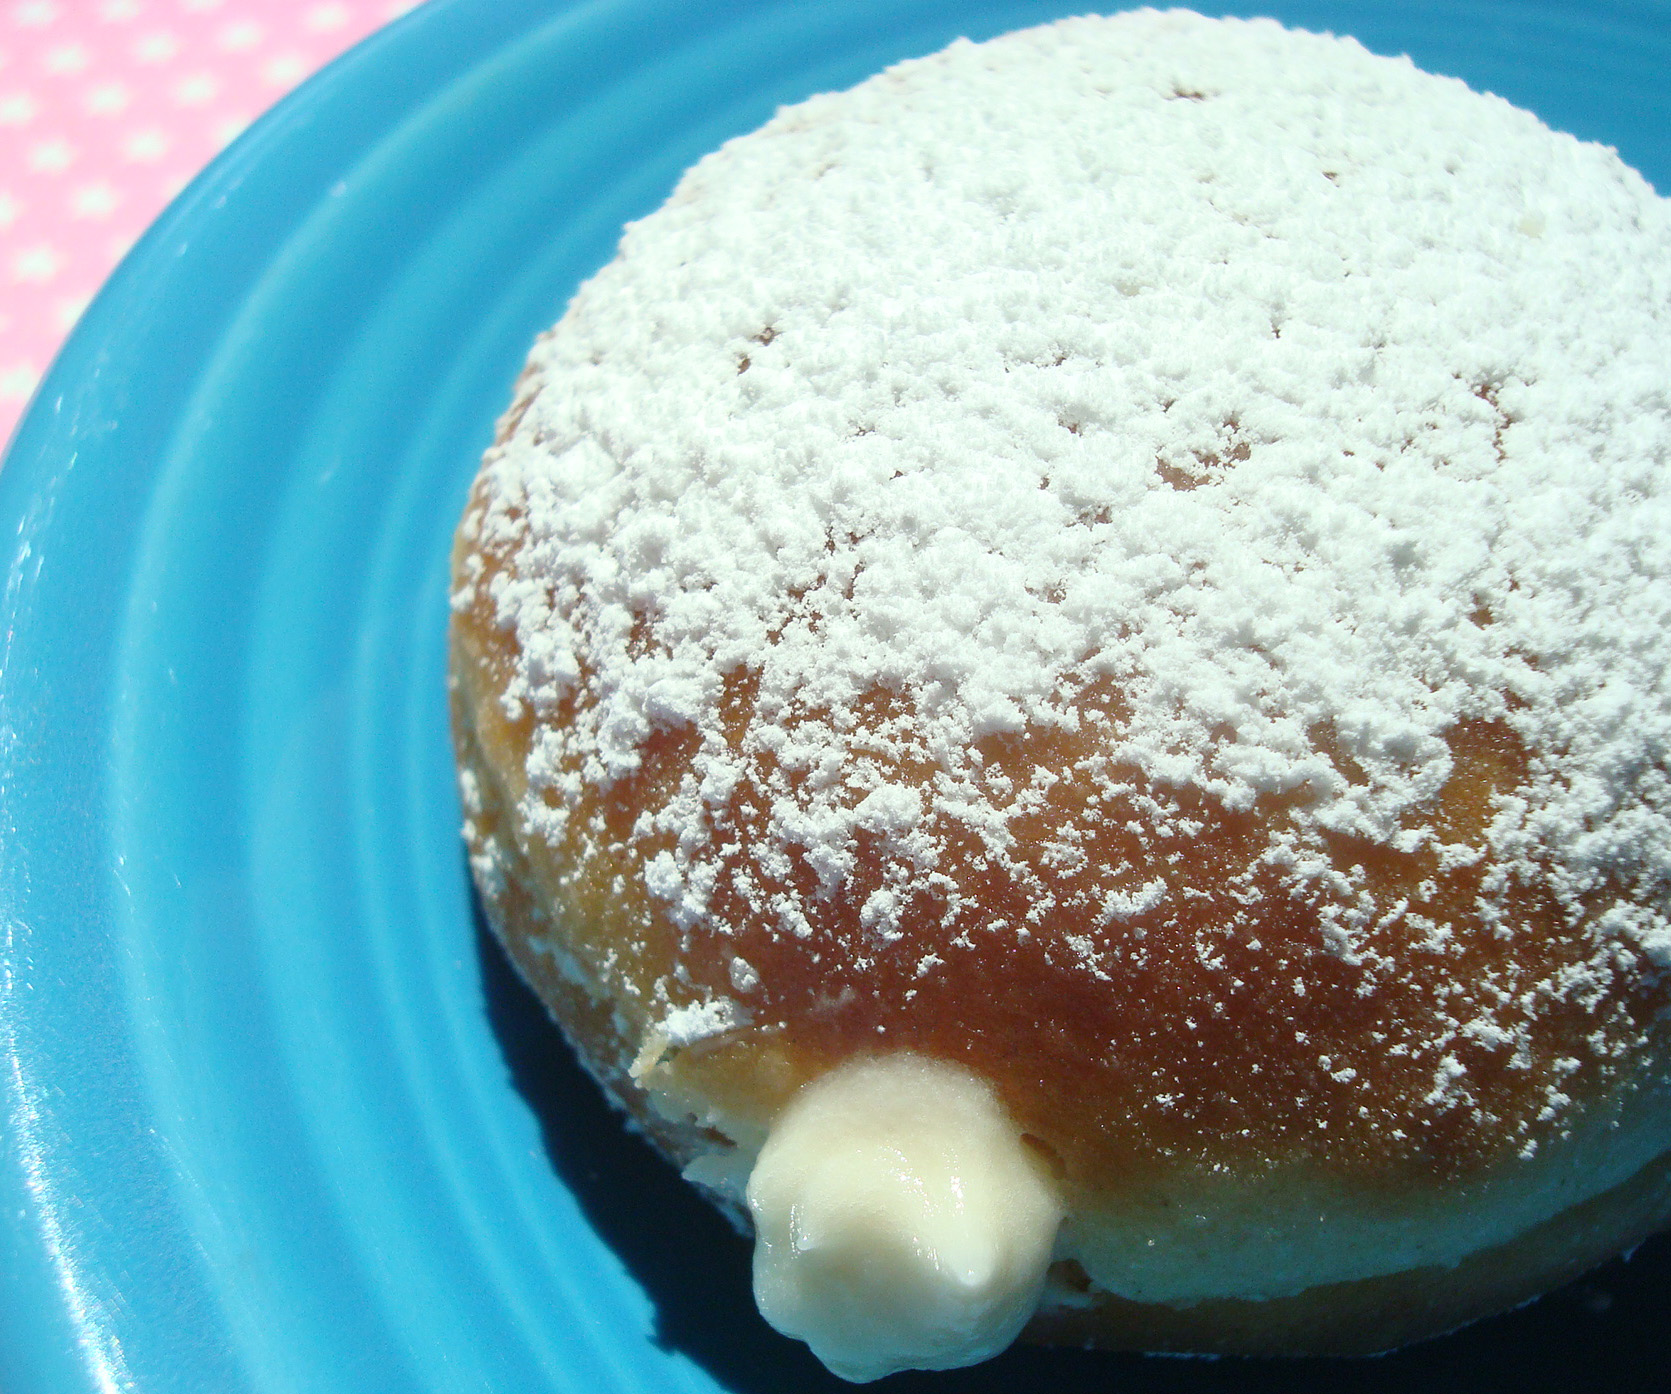 Powdered Doughnut With Cream Filled Center